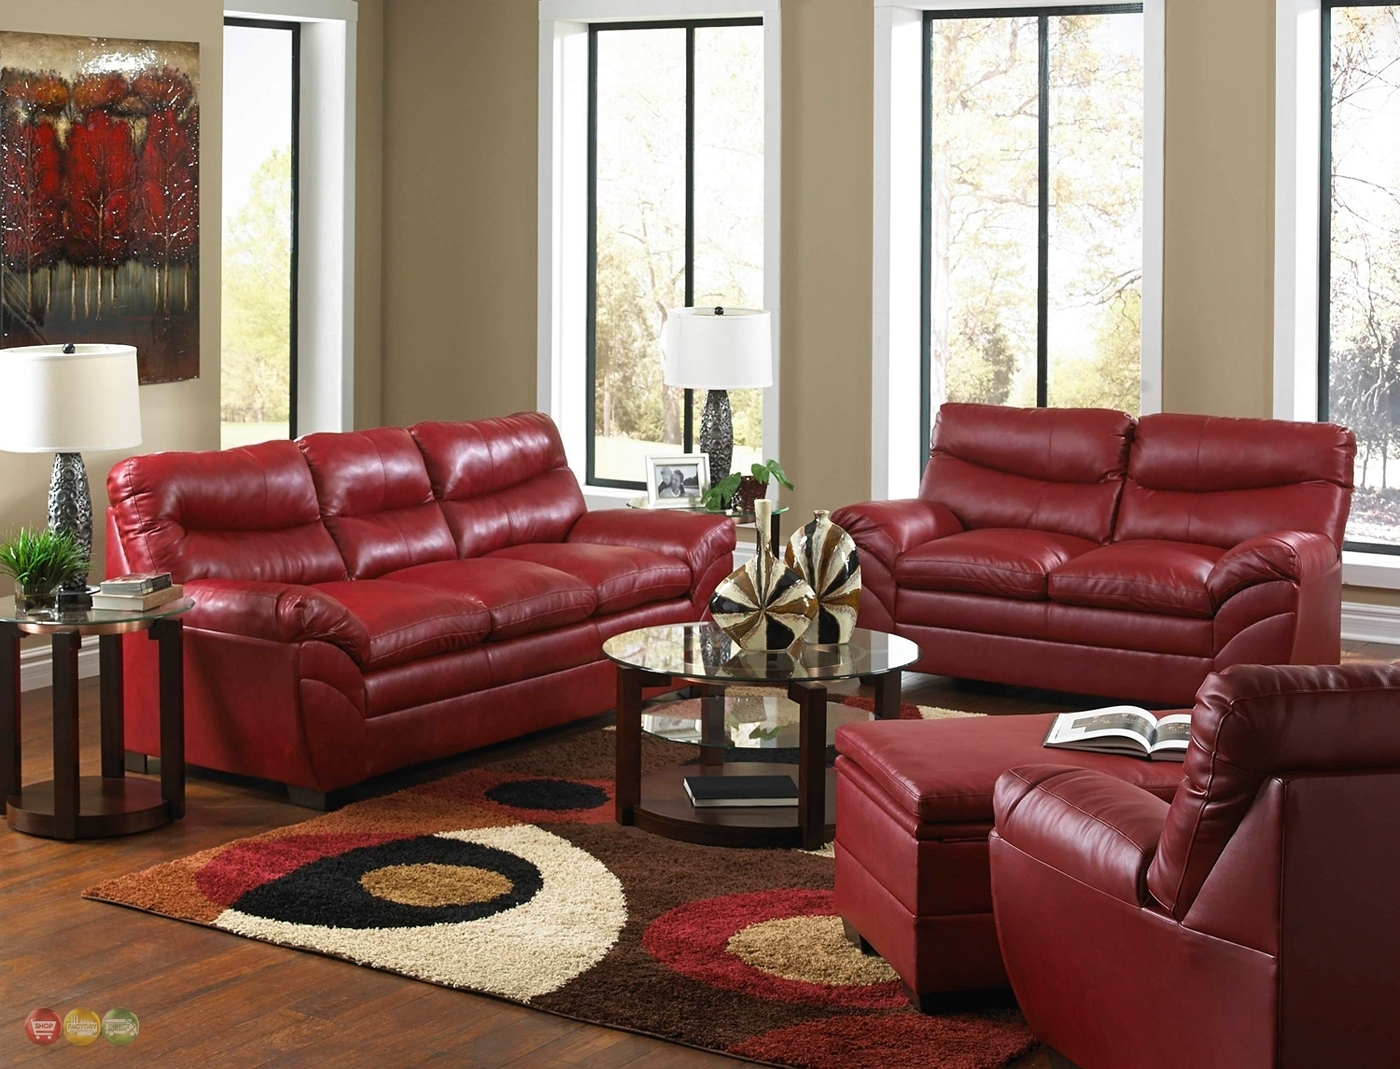 Red Leather Sofa Living Room Design | Living Room Decor within Red Leather Couches For Living Room (Image 10 of 15)